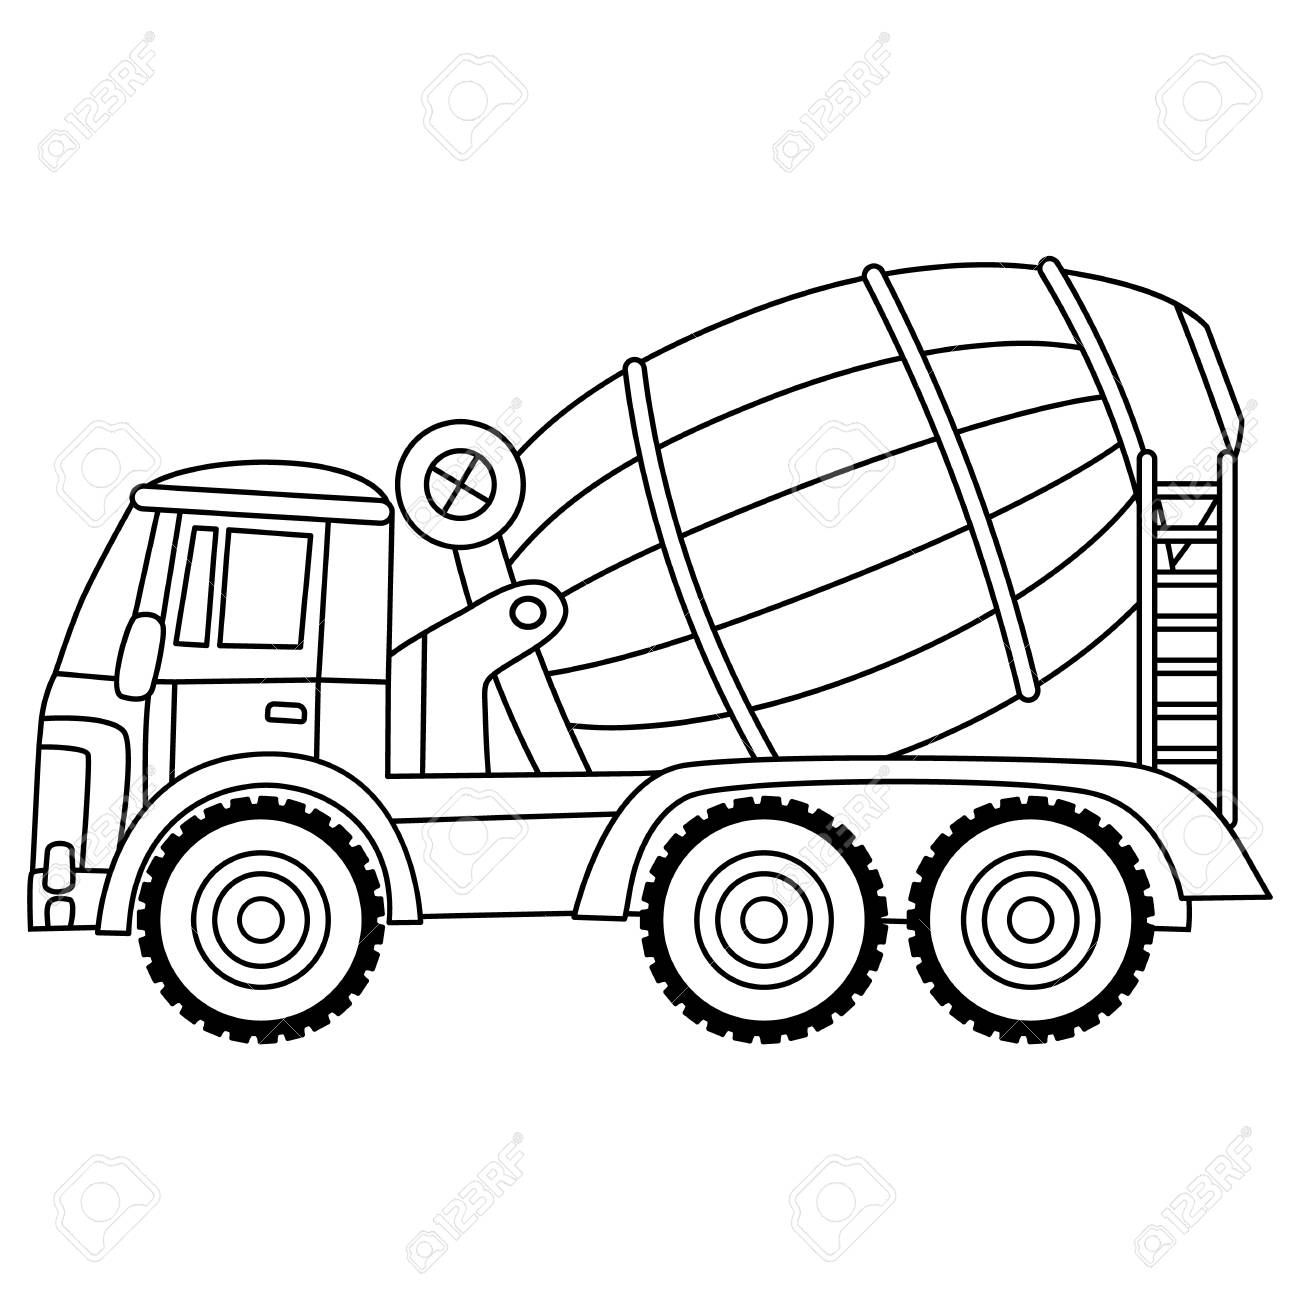 Construction Vehicle Clipart Black And White Pictures On